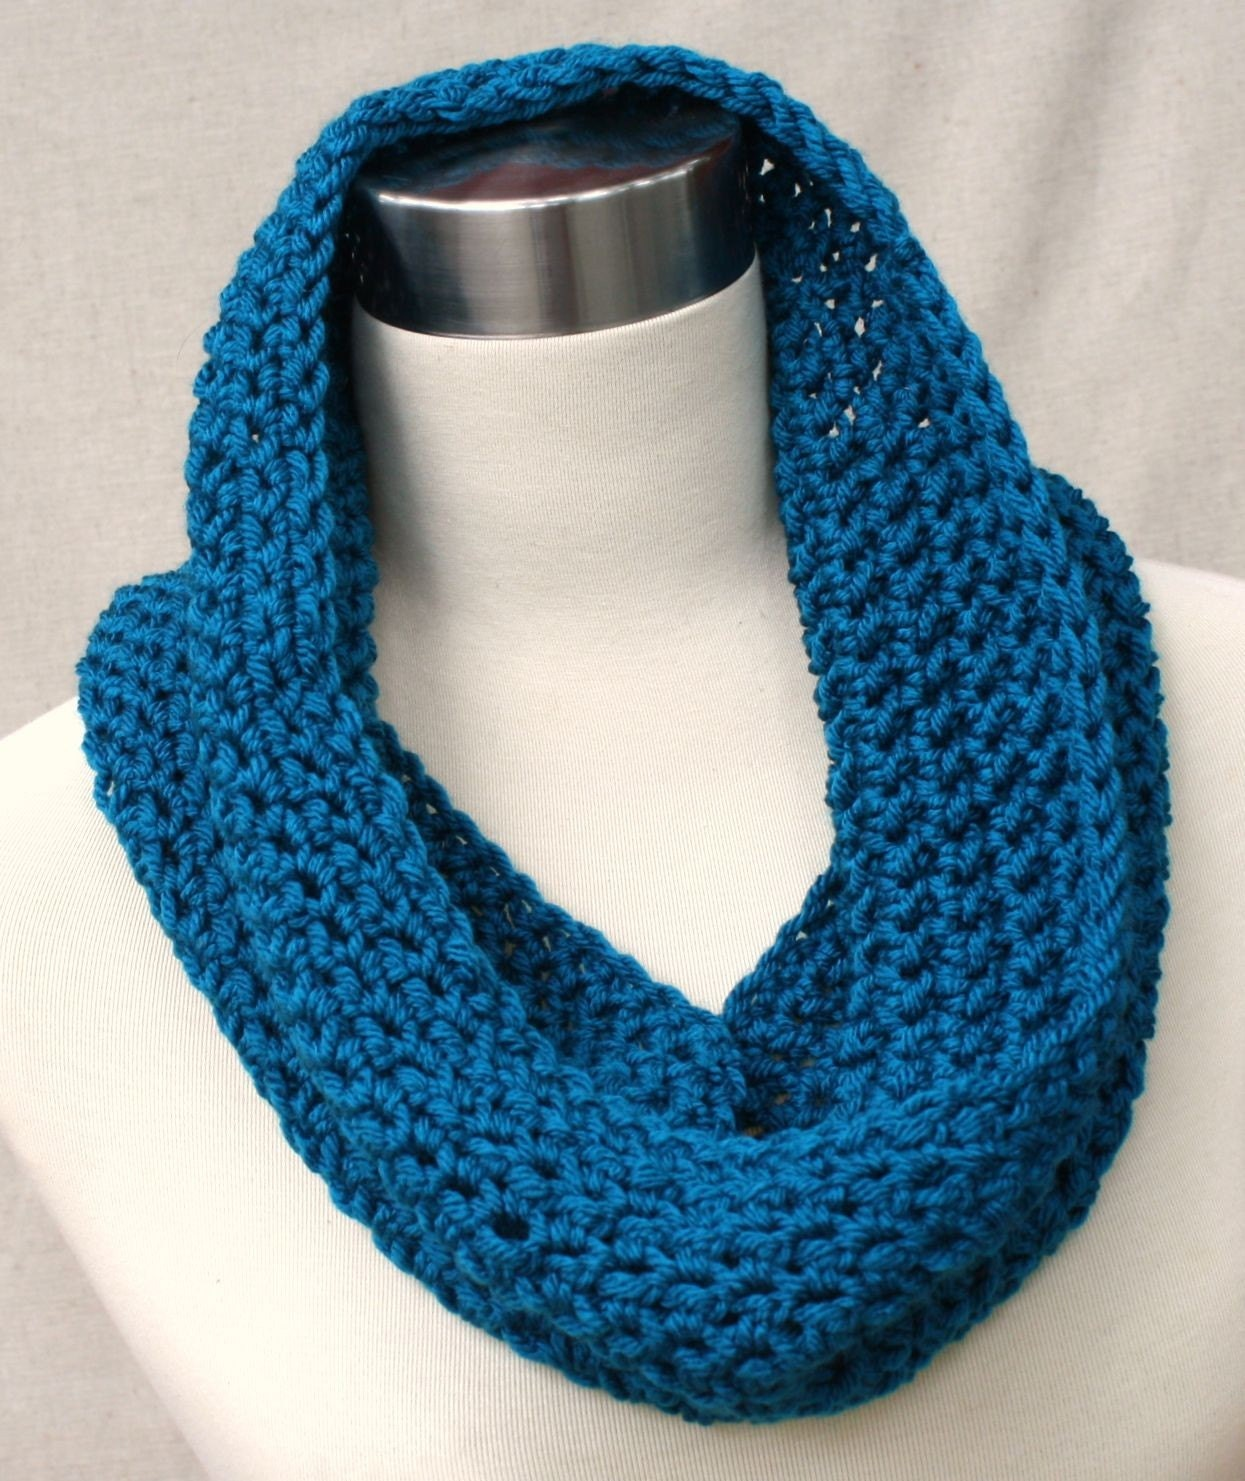 Crochet Teal Cowl Neck Scarfavailable in 36 colors Cowl Neck Scarves Crochet